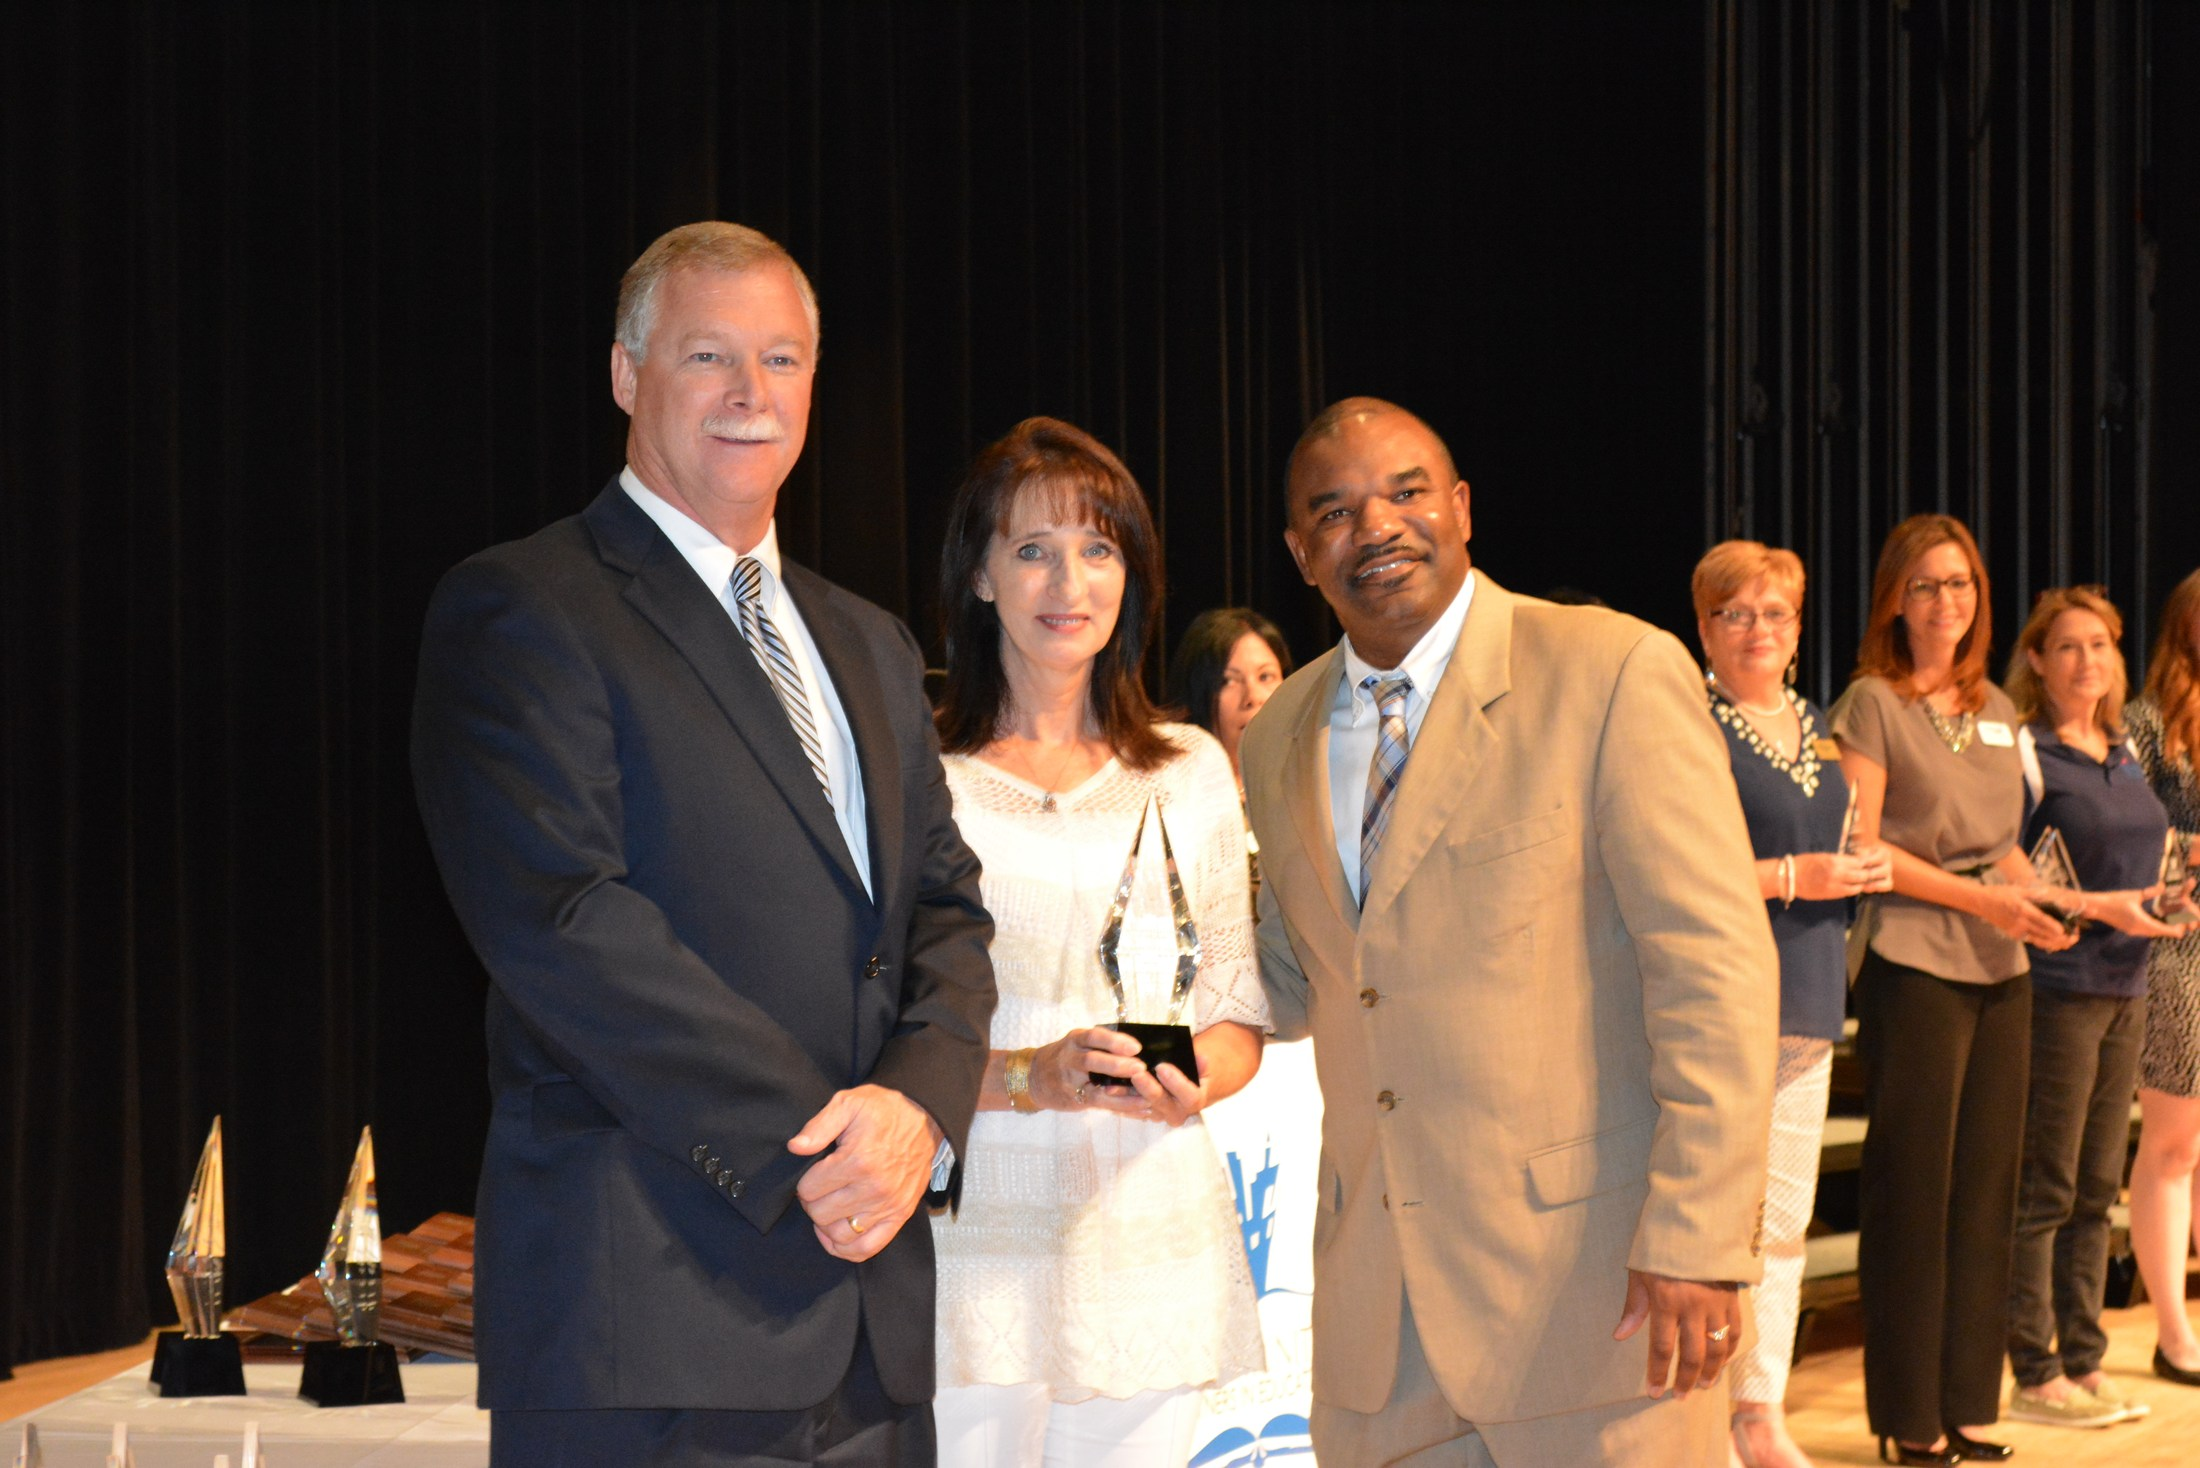 Superintendents pose with award winner